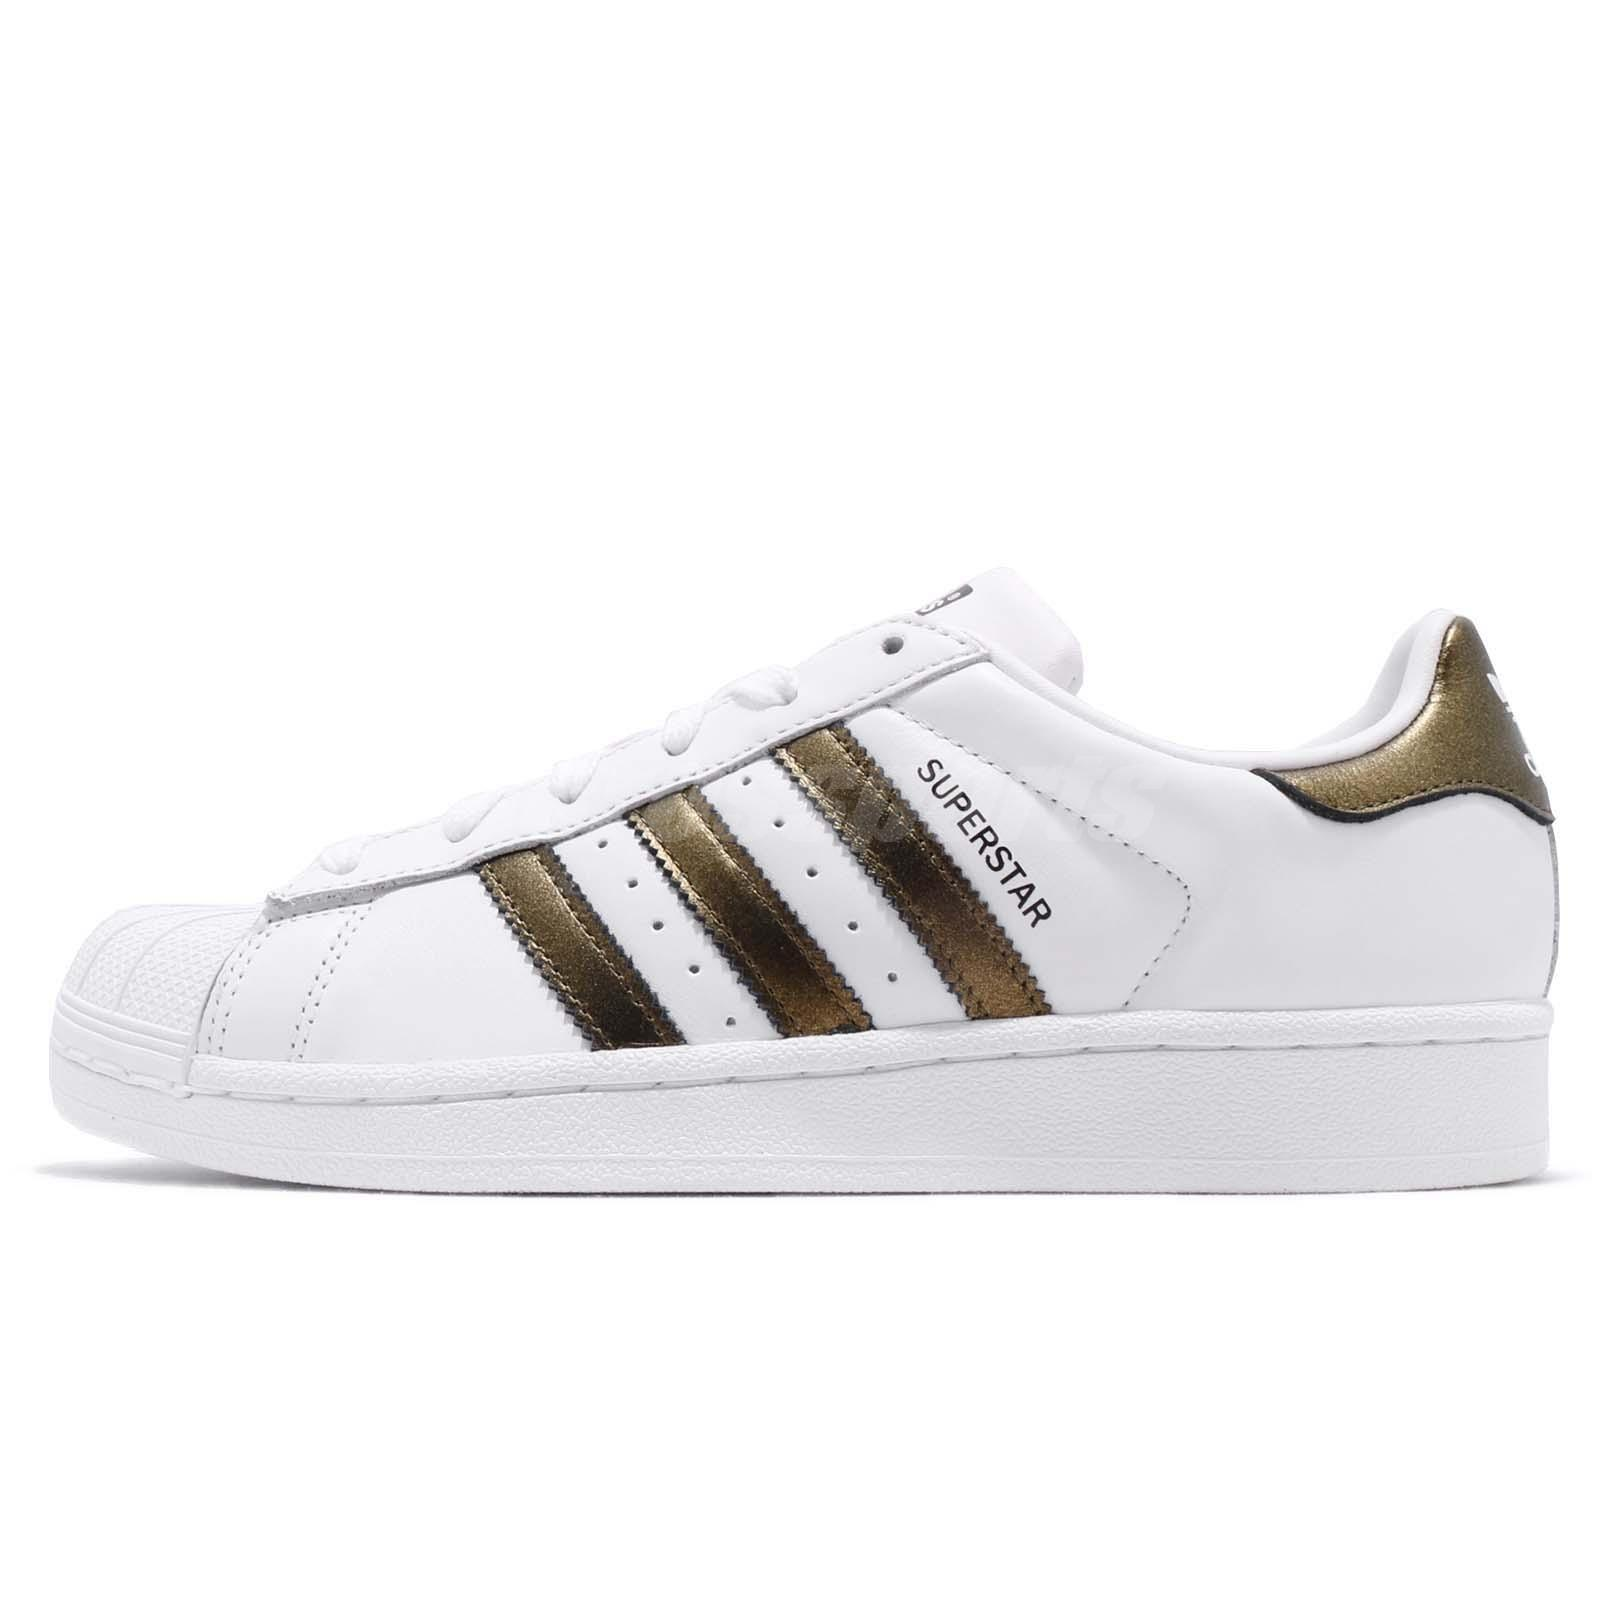 check out 709d5 d0e59 adidas Originals Superstar W White Bronze Black Women Casual Shoe Sneaker  B41513